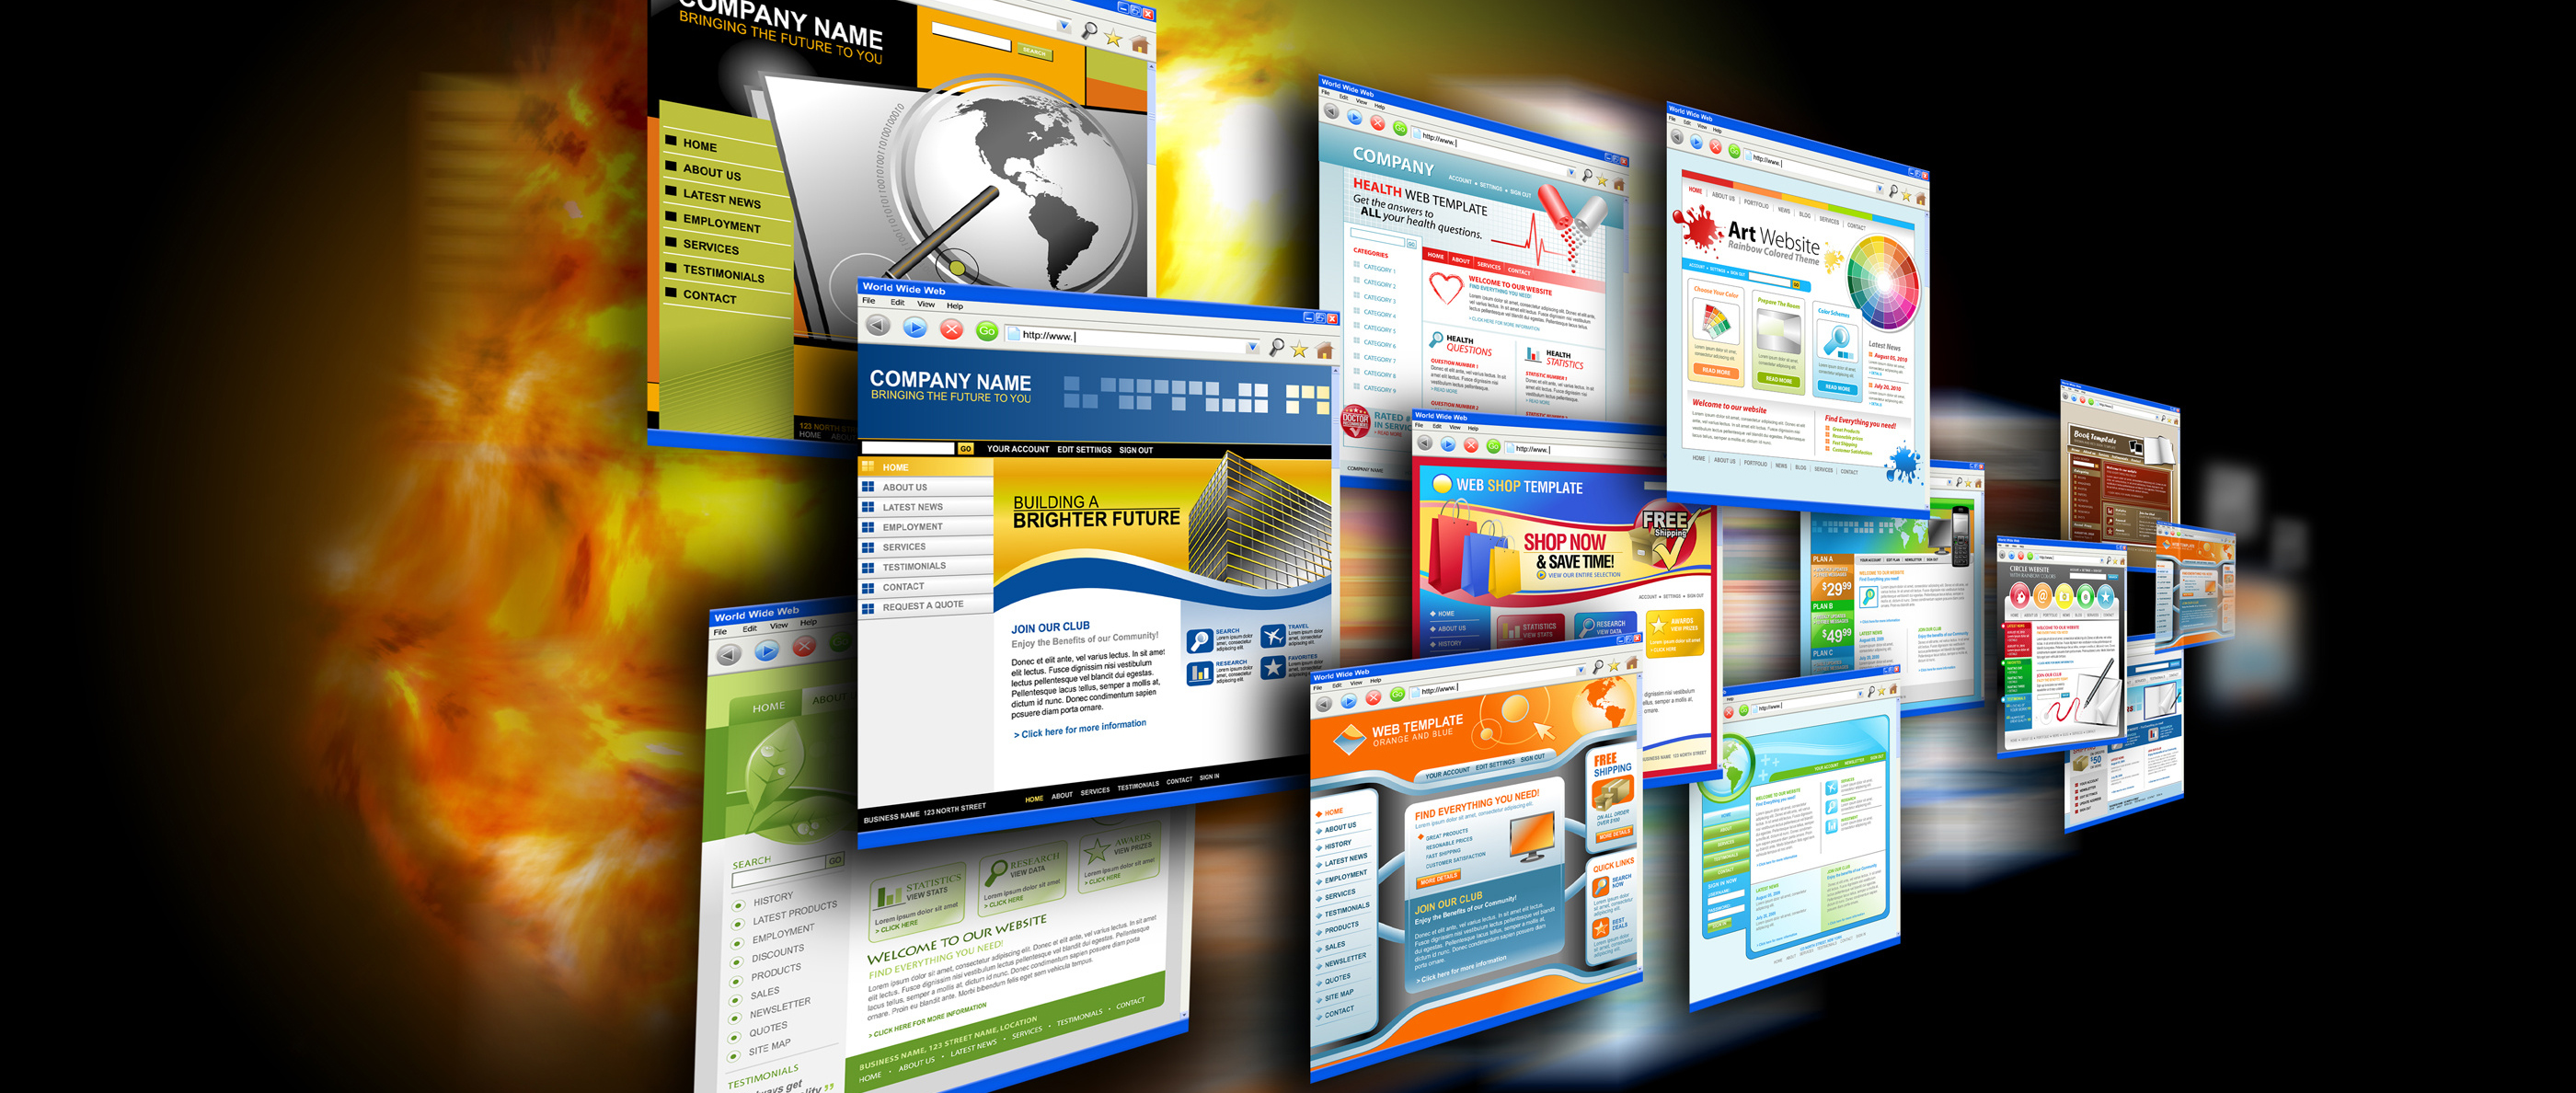 Image of Sample Websites